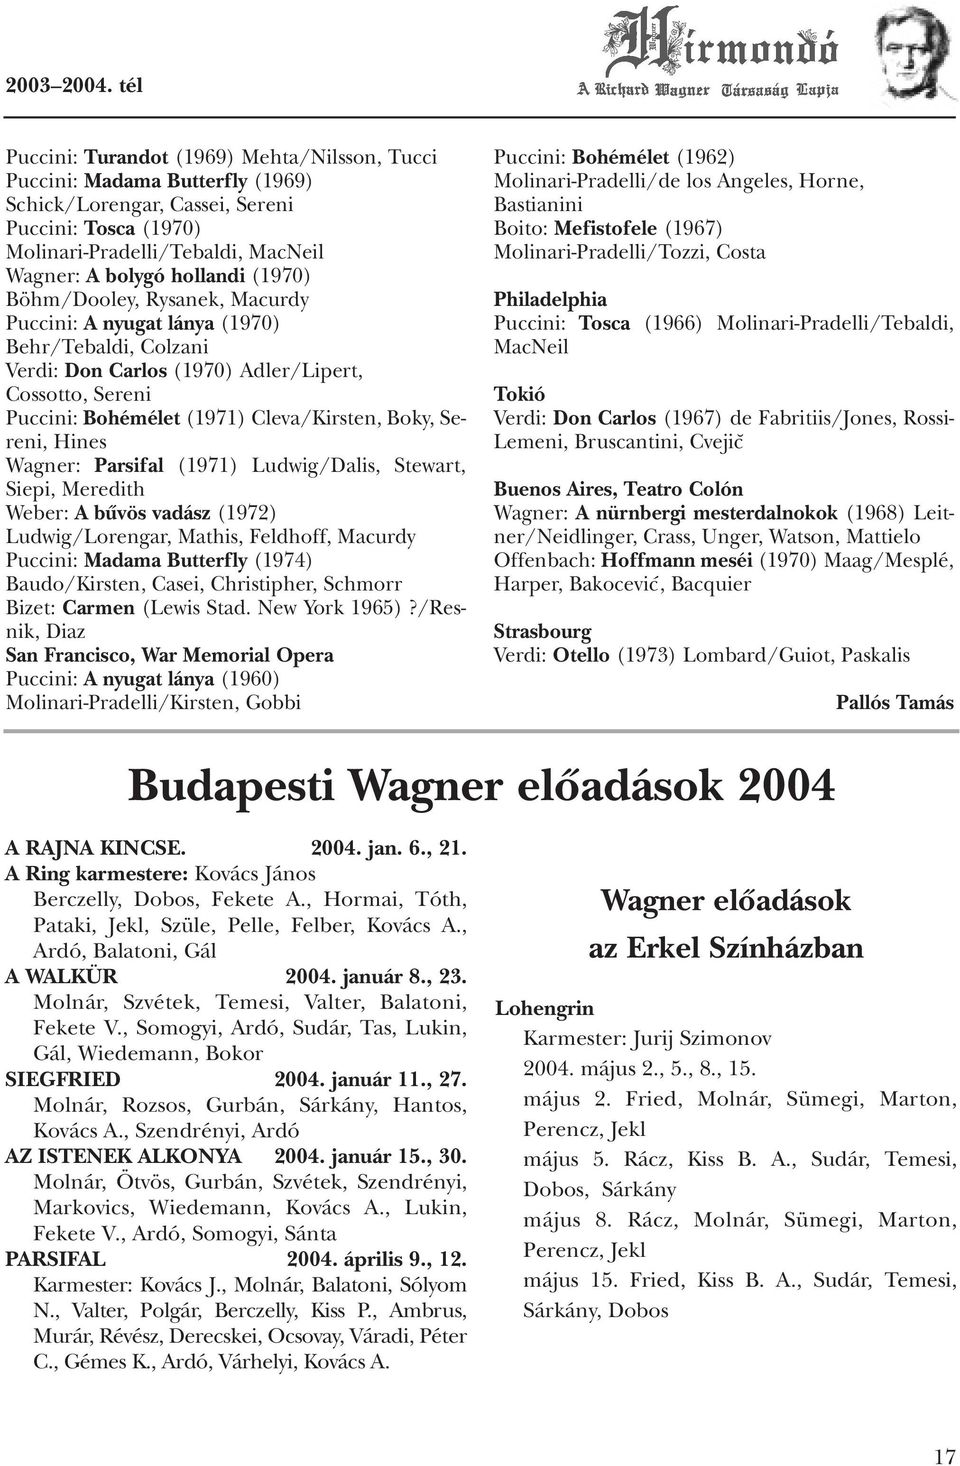 Sereni, Hines Wagner: Parsifal (1971) Ludwig/Dalis, Stewart, Siepi, Meredith Weber: A bûvös vadász (1972) Ludwig/Lorengar, Mathis, Feldhoff, Macurdy Puccini: Madama Butterfly (1974) Baudo/Kirsten,